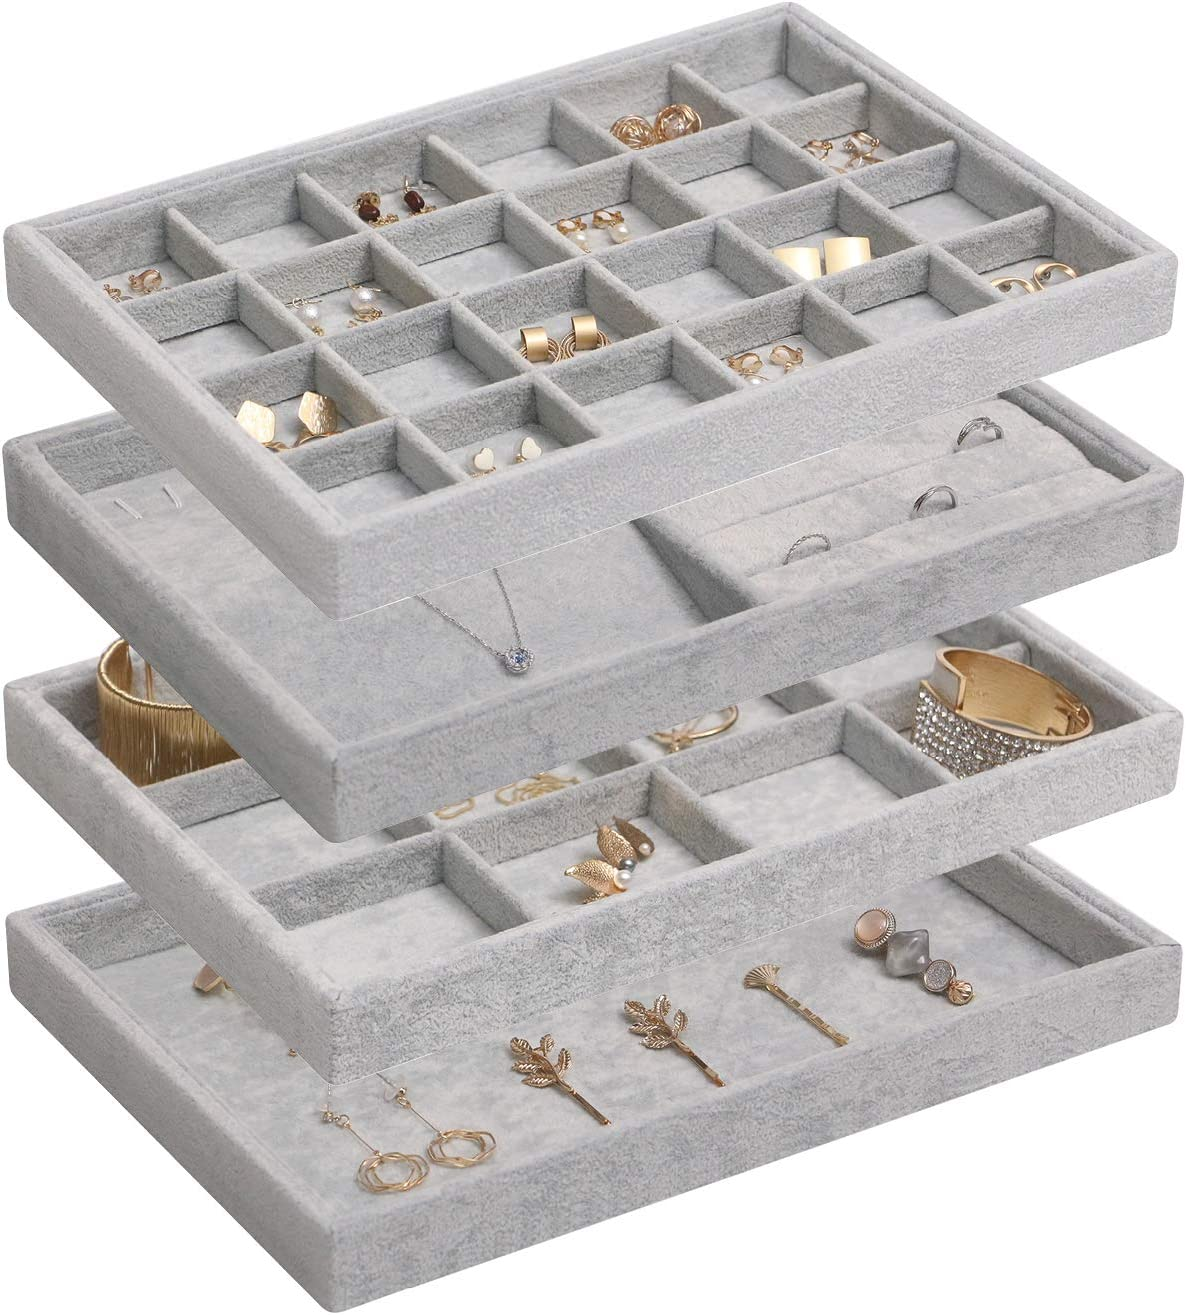 Ring Earrings Necklace Jewelry Display Organizer Box Tray Showcase Holder Gray